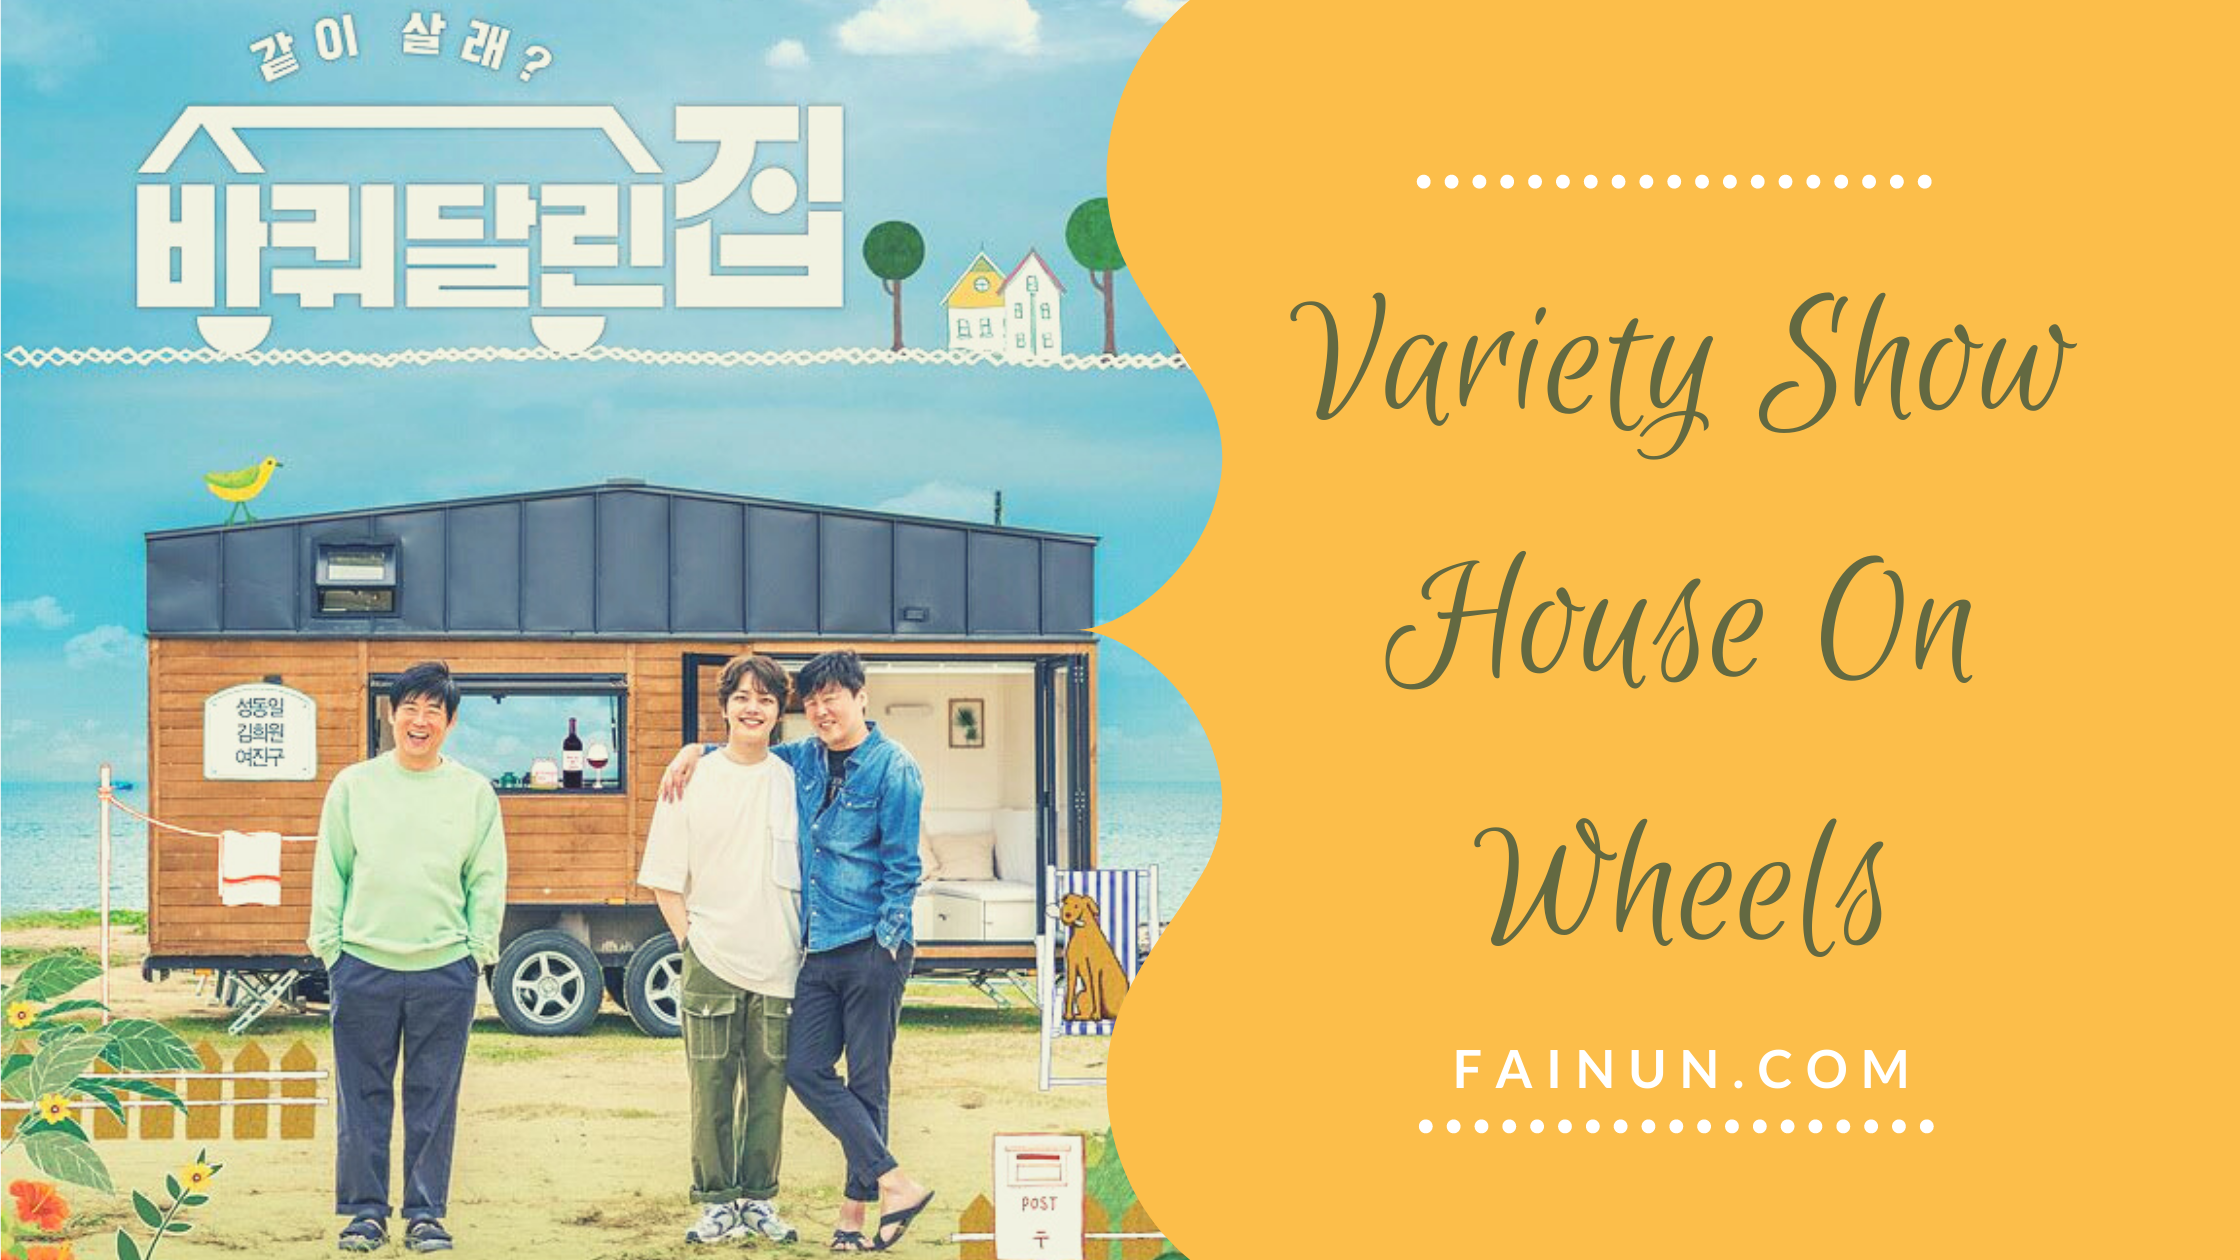 Variety Show House On Wheels